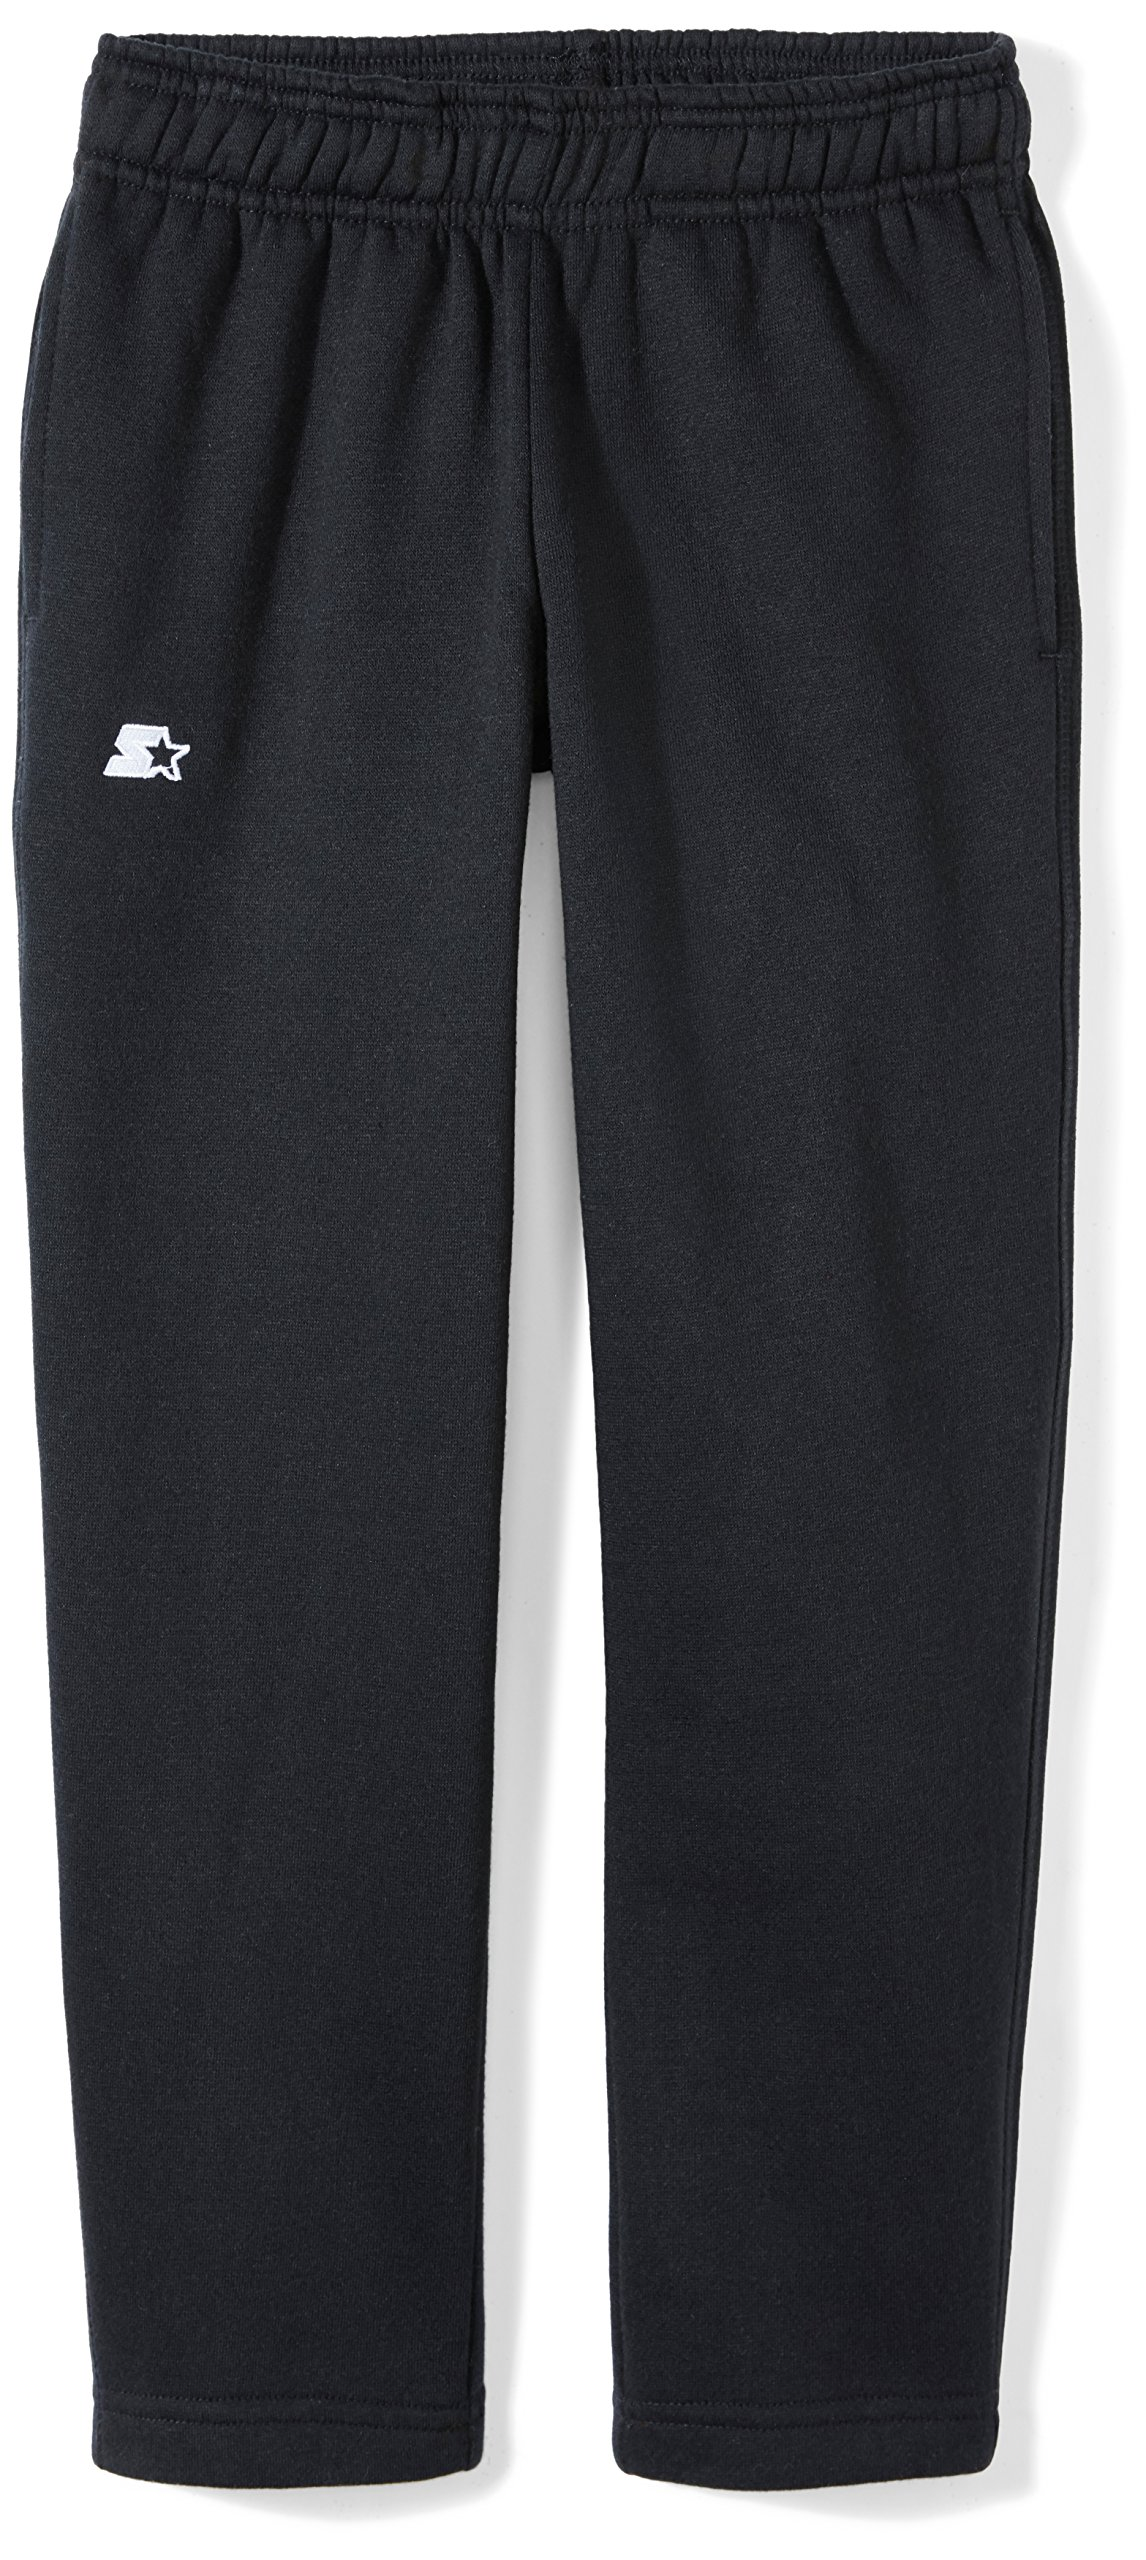 Starter Girls' Open-Bottom Sweatpants with Pockets, Prime Exclusive, Black, XL (14/16)